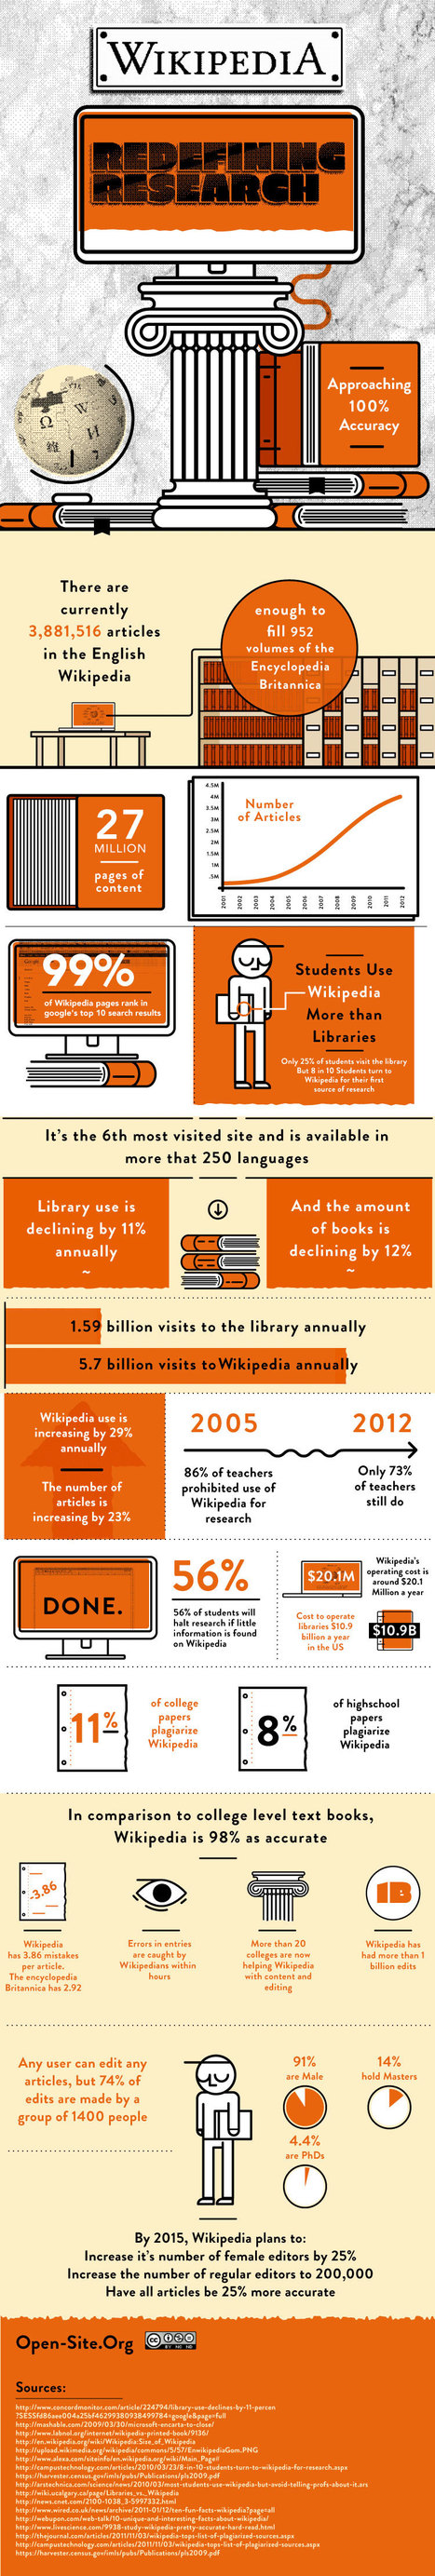 [Infografía] Wikipedia vence a la Enciclopedia Britannica | Edumorfosis.it | Scoop.it